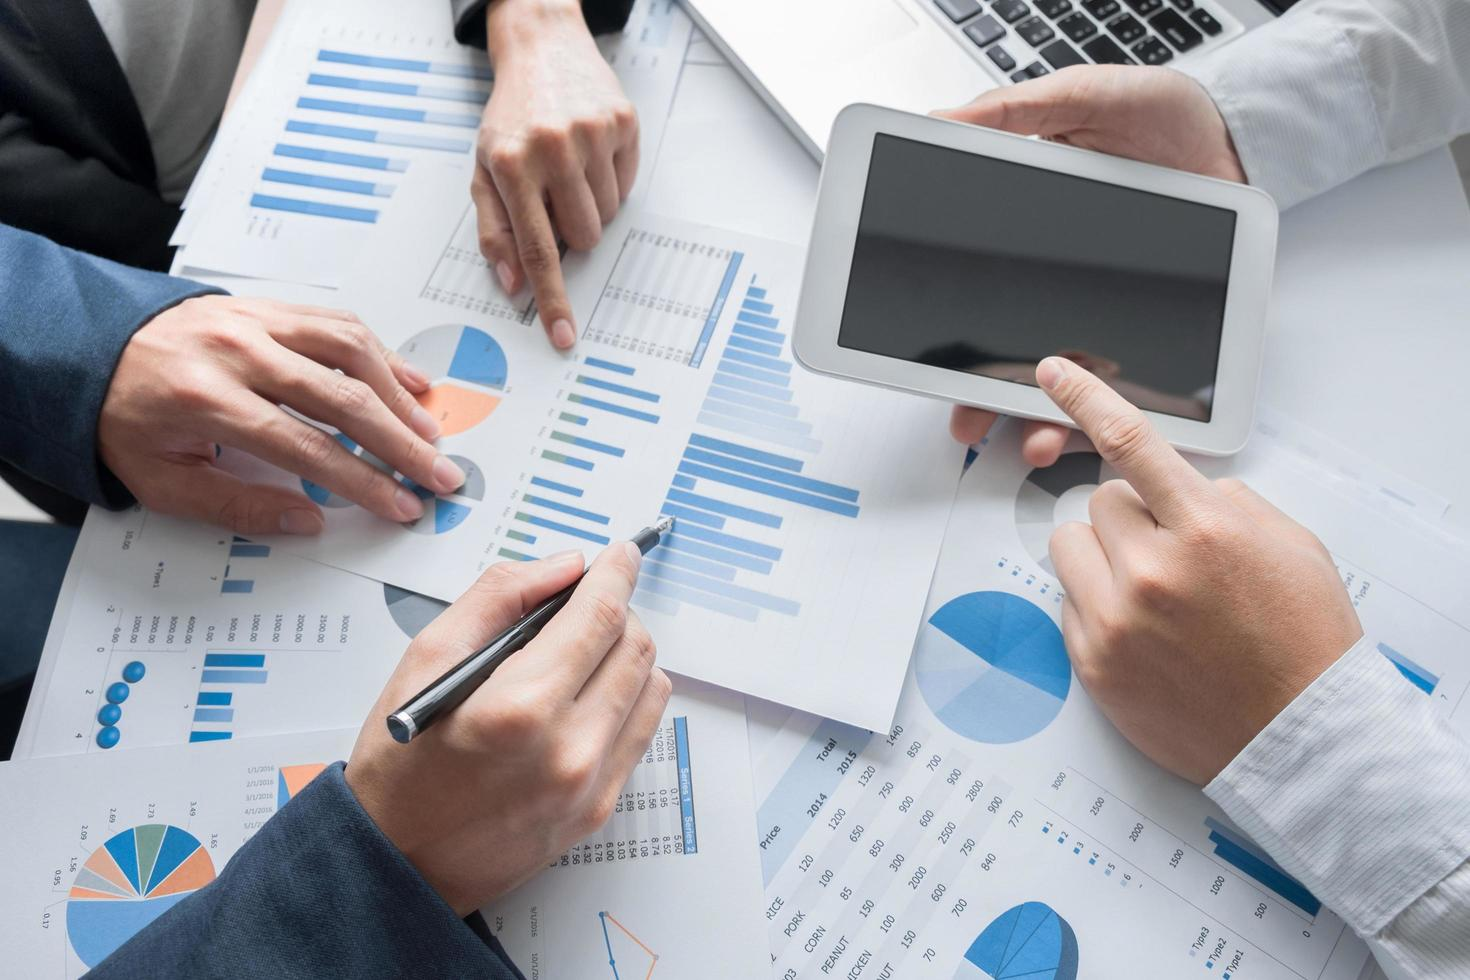 Business team hands at work with business plan  photo